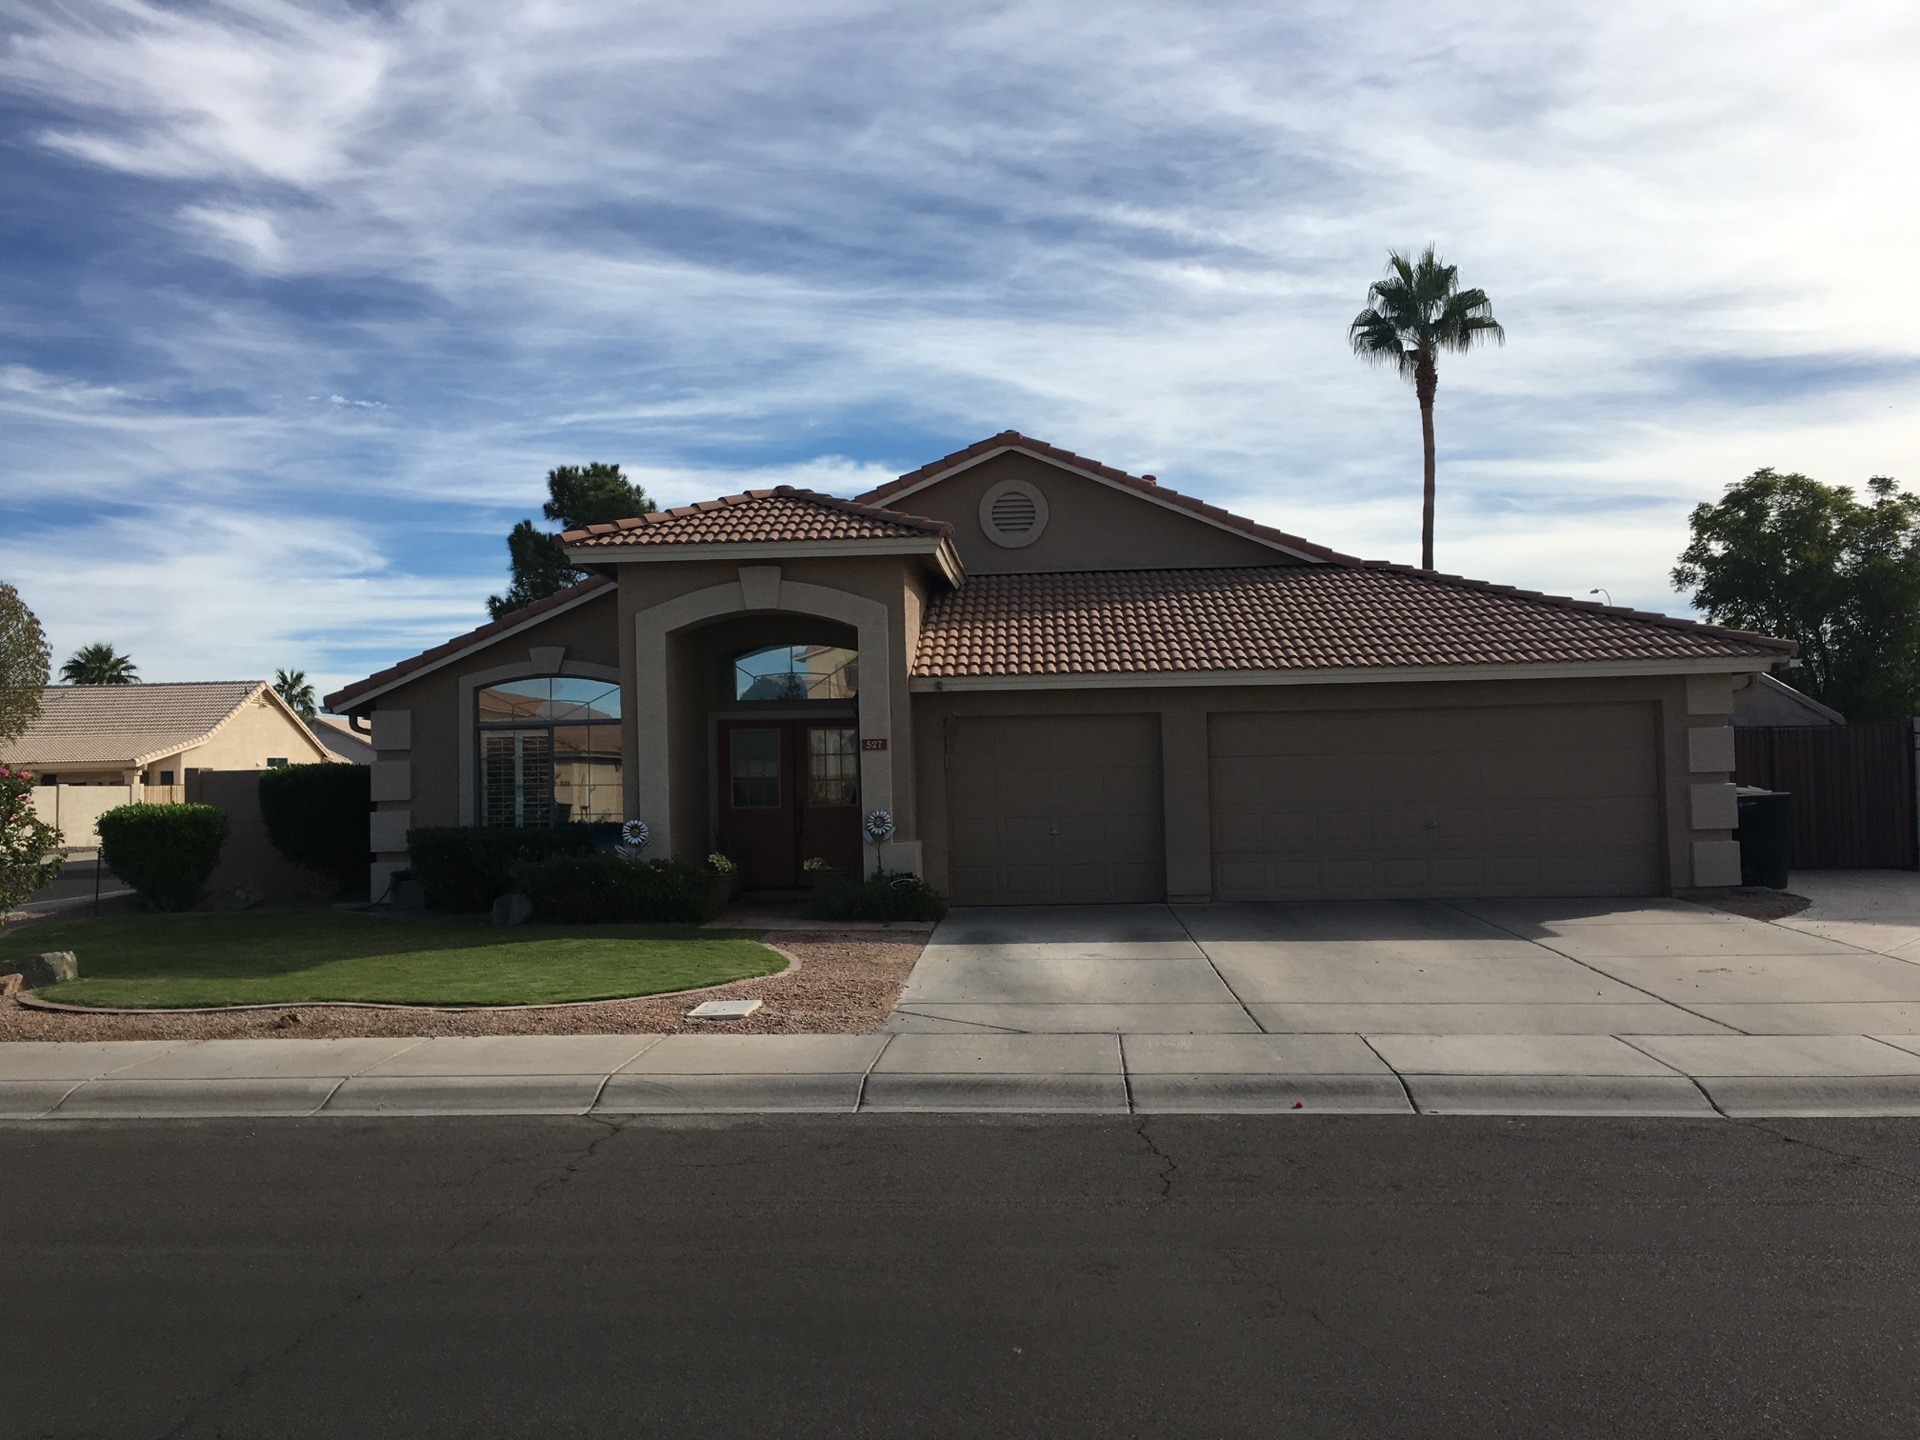 527 N Newport St Chandler, Arizona 85225